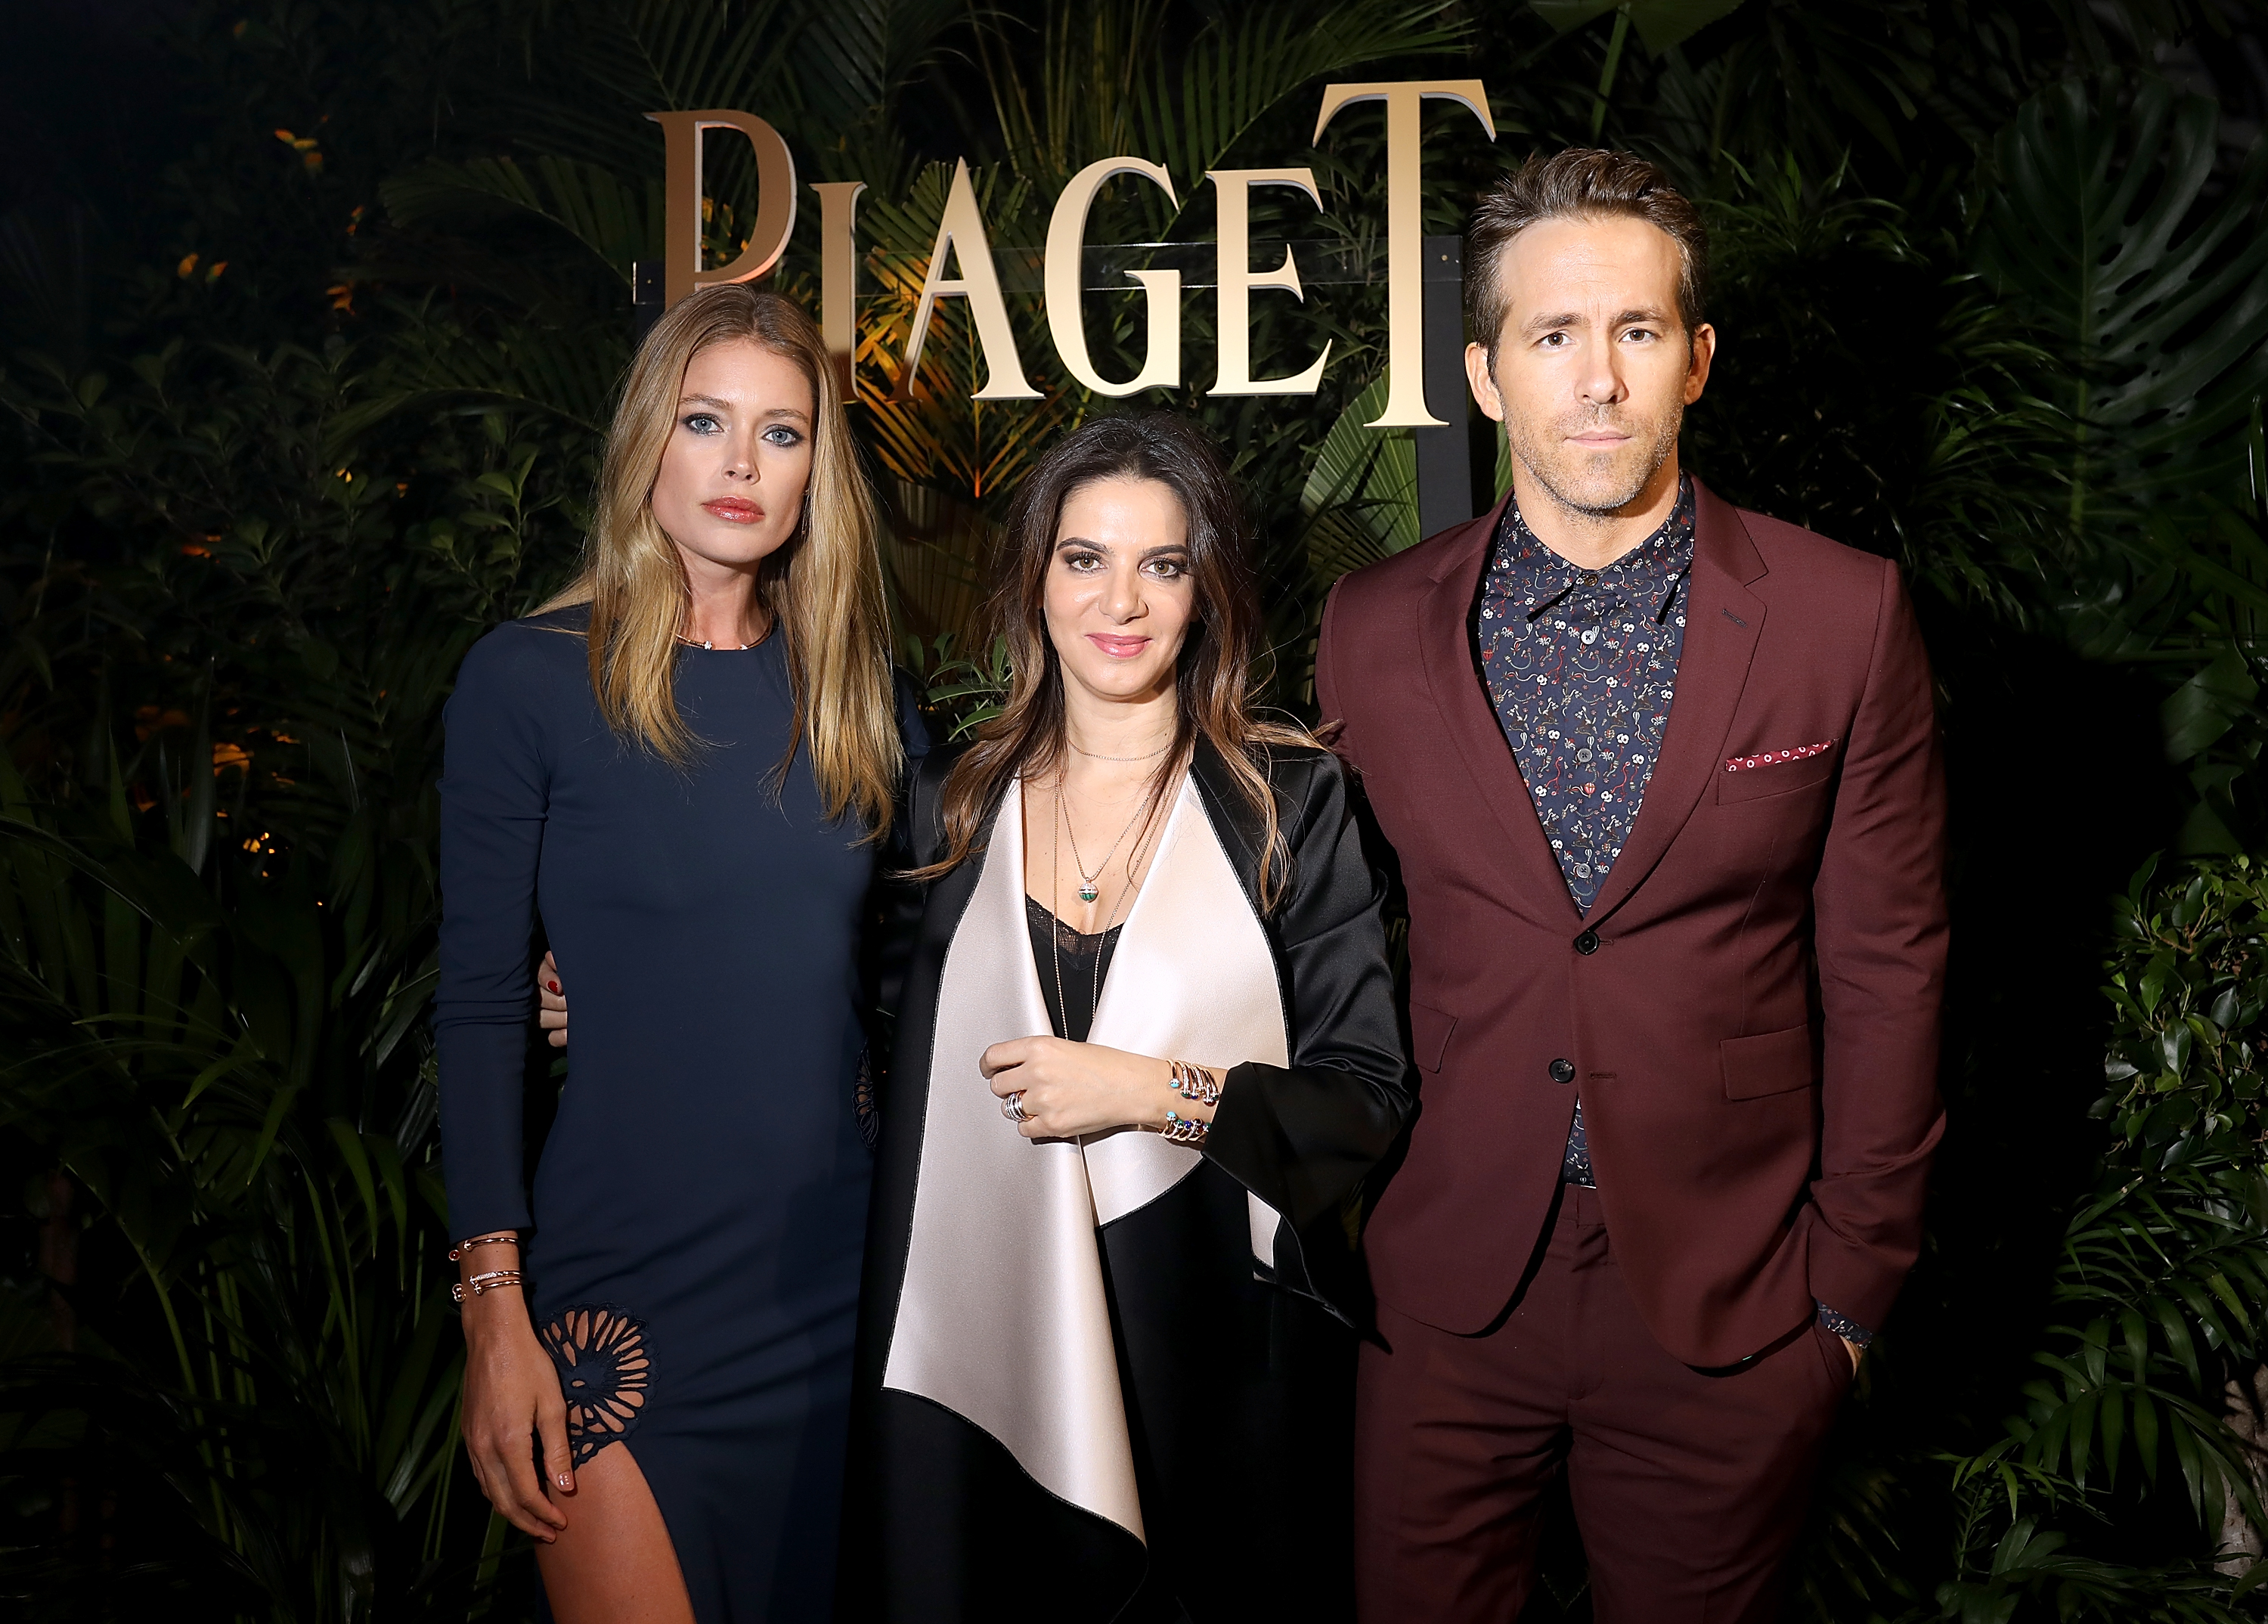 Doutzen Kroes, Piaget CEO Chabi Nouri and Ryan Reynolds